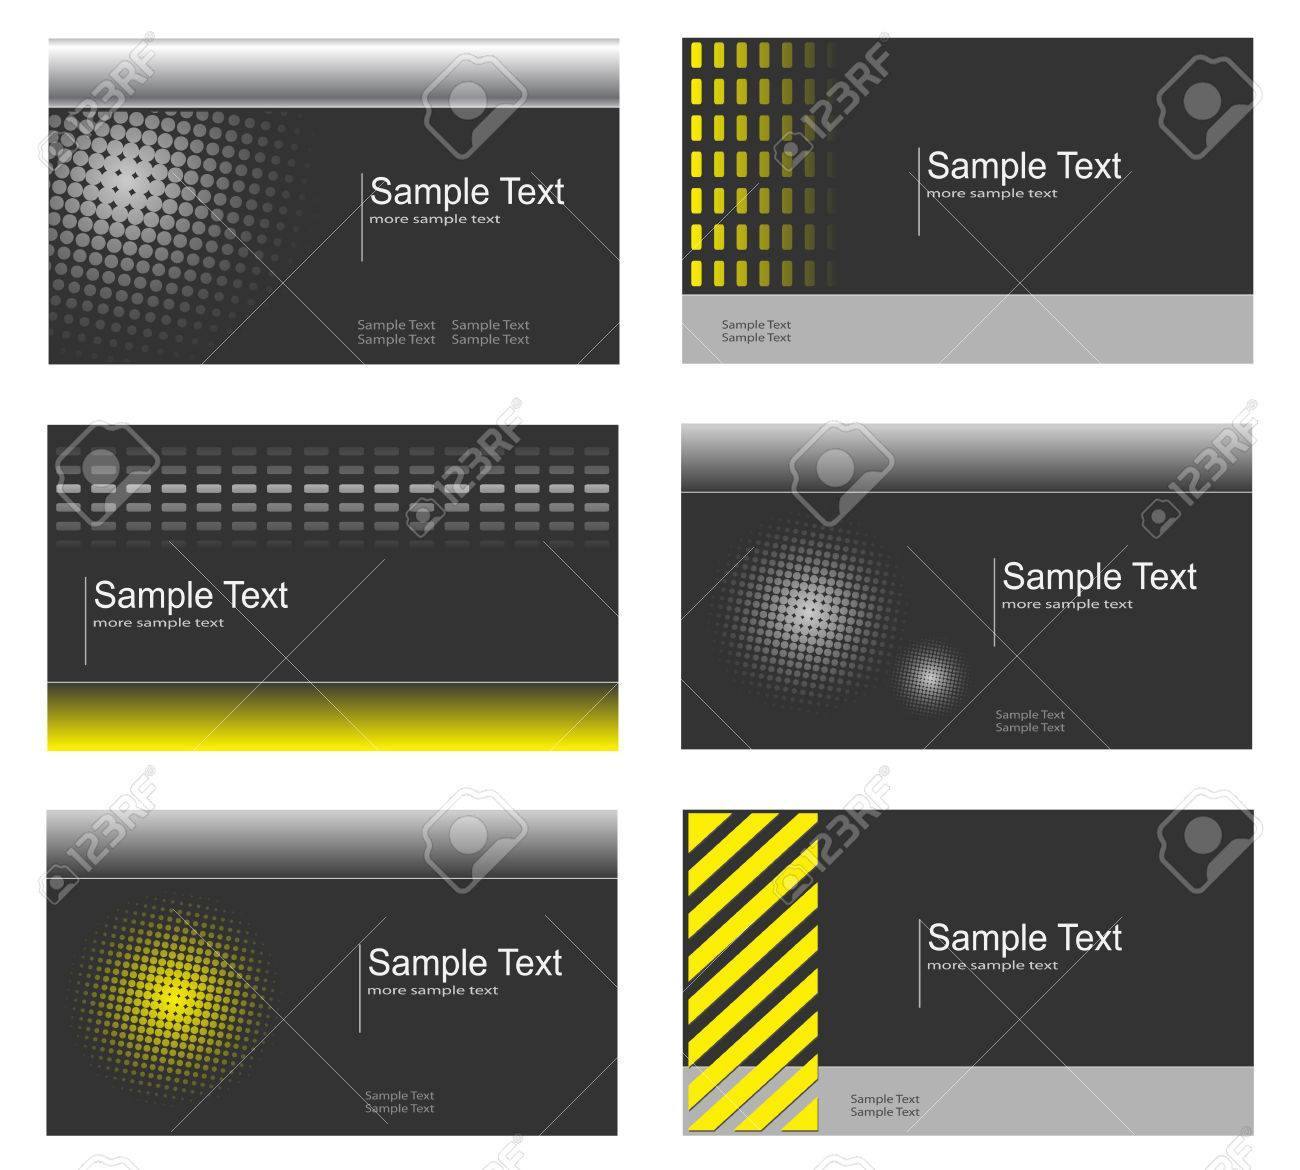 Business card collection, grey and yellow Stock Vector - 6863944